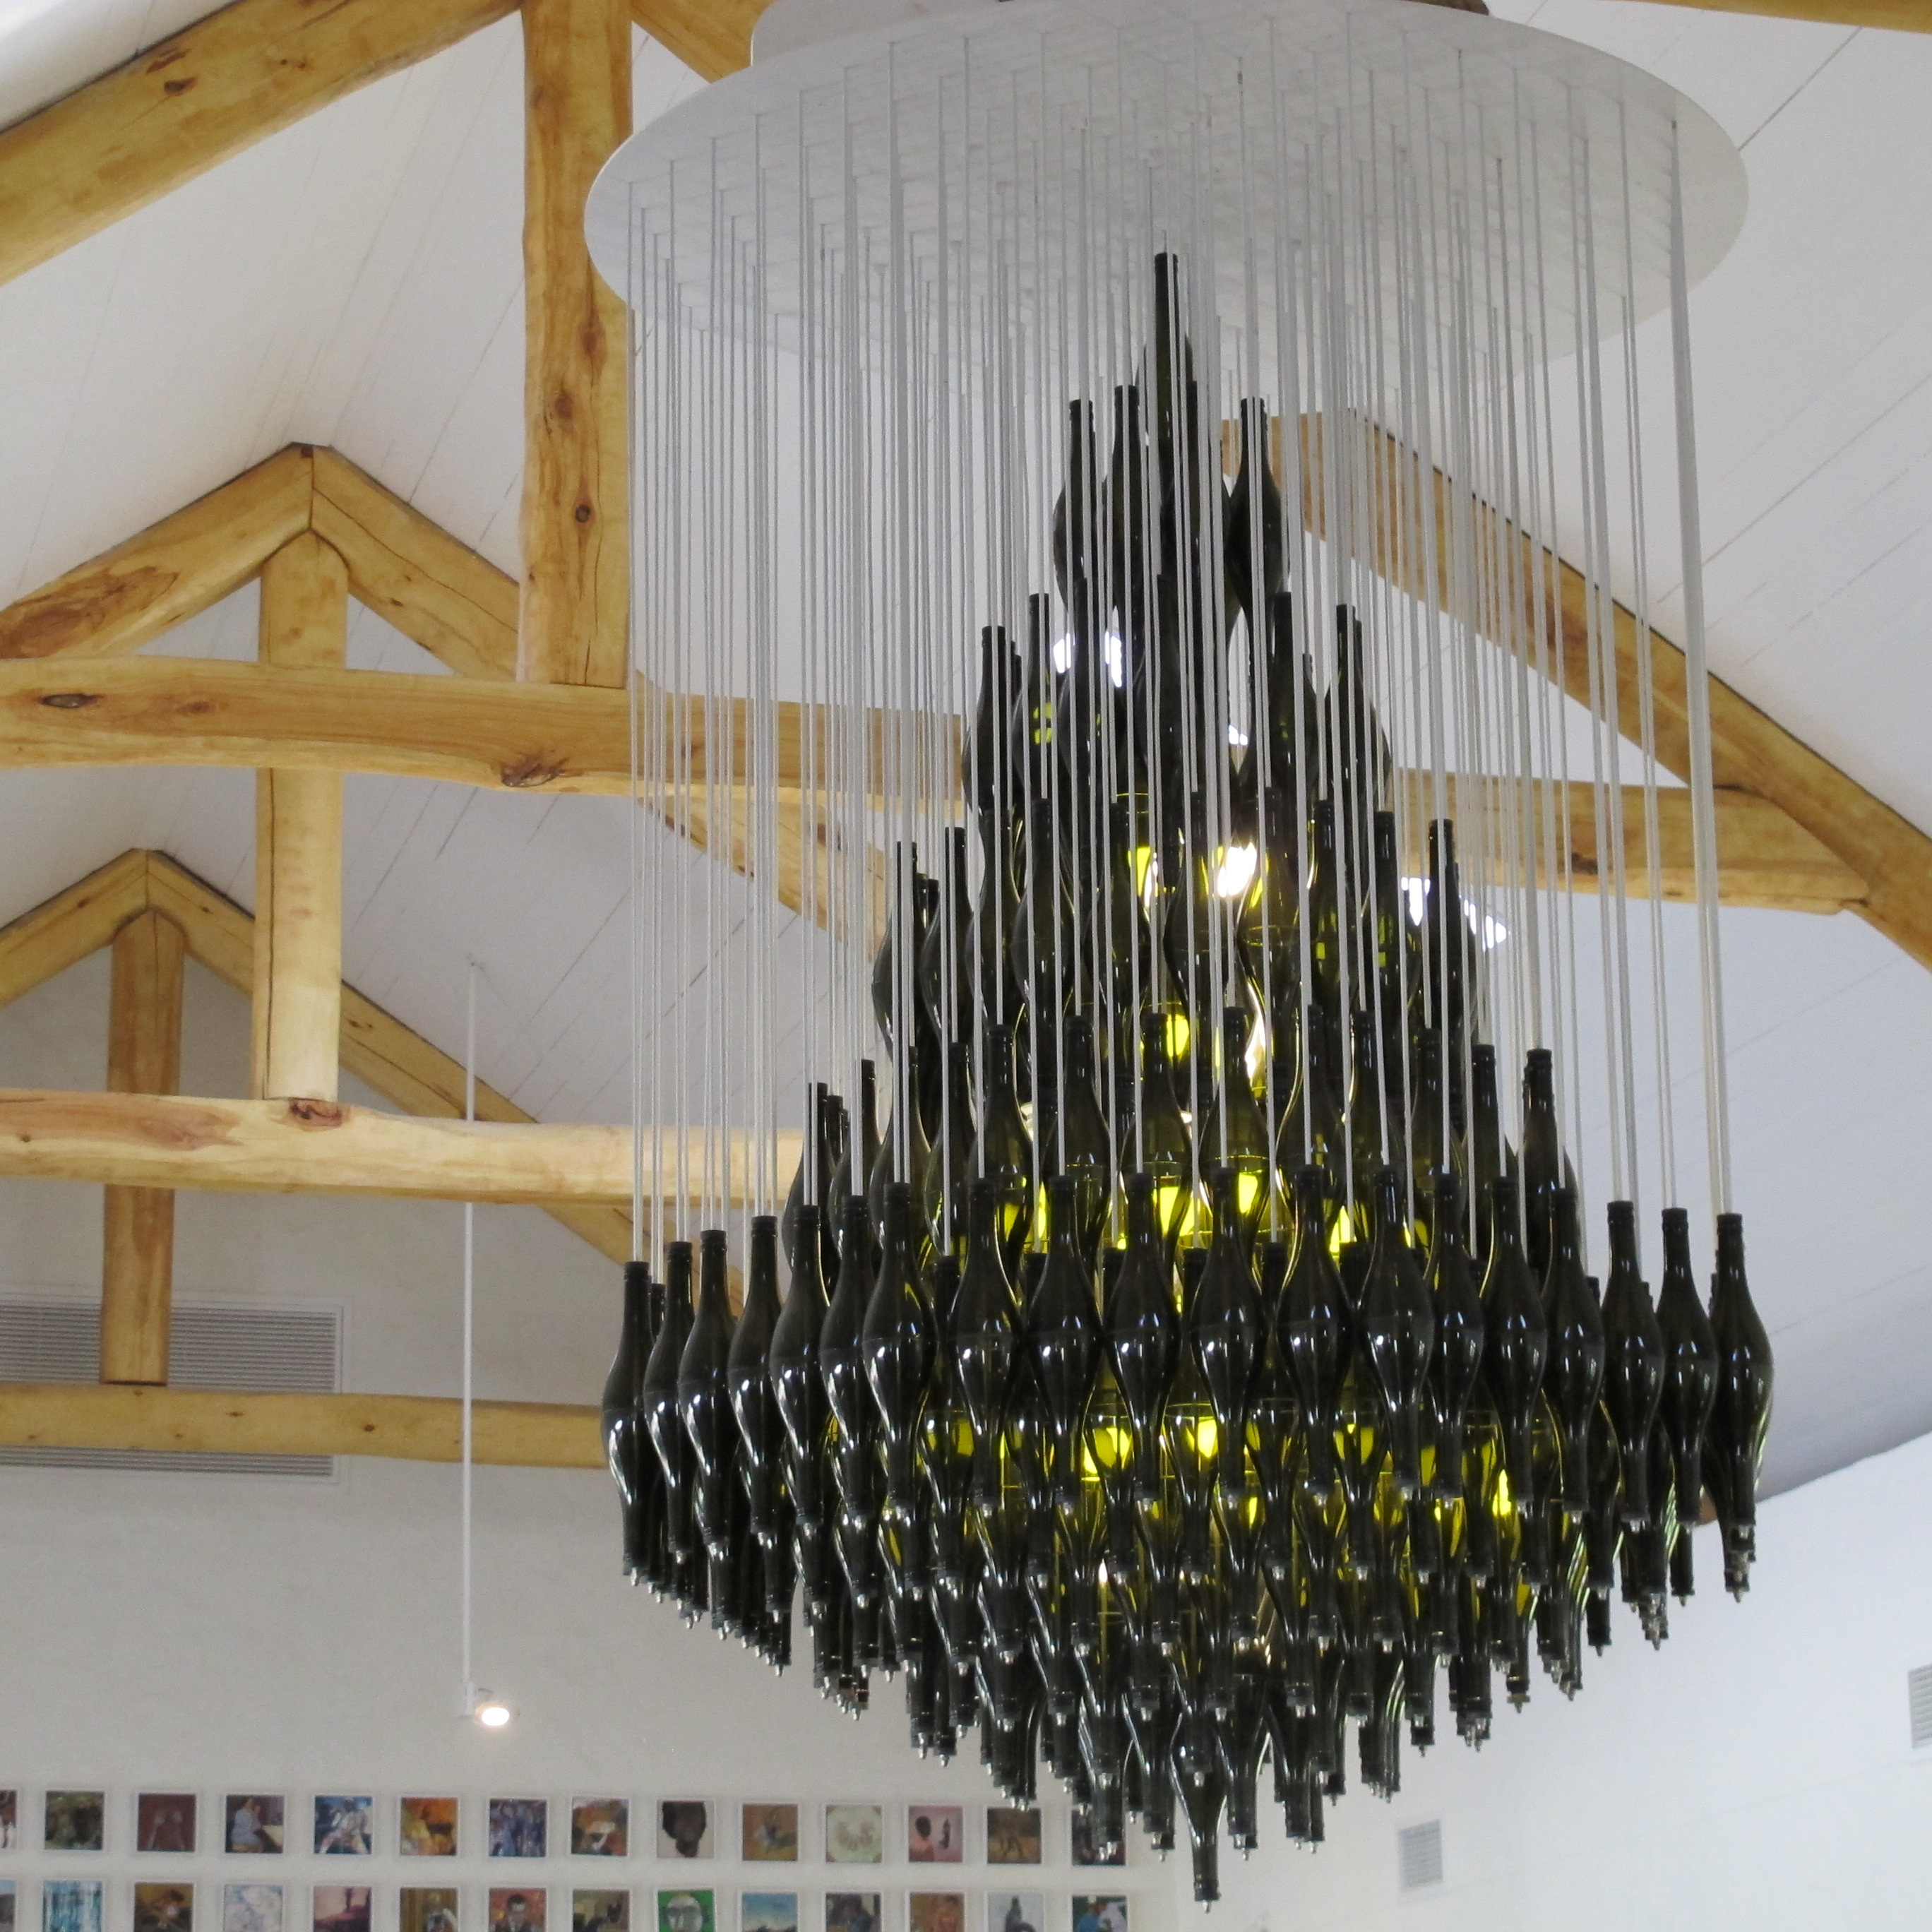 1000 images about wine bottle glass chandeliers on pinterest bar recycled wine bottles and - Glass bottle chandelier ...